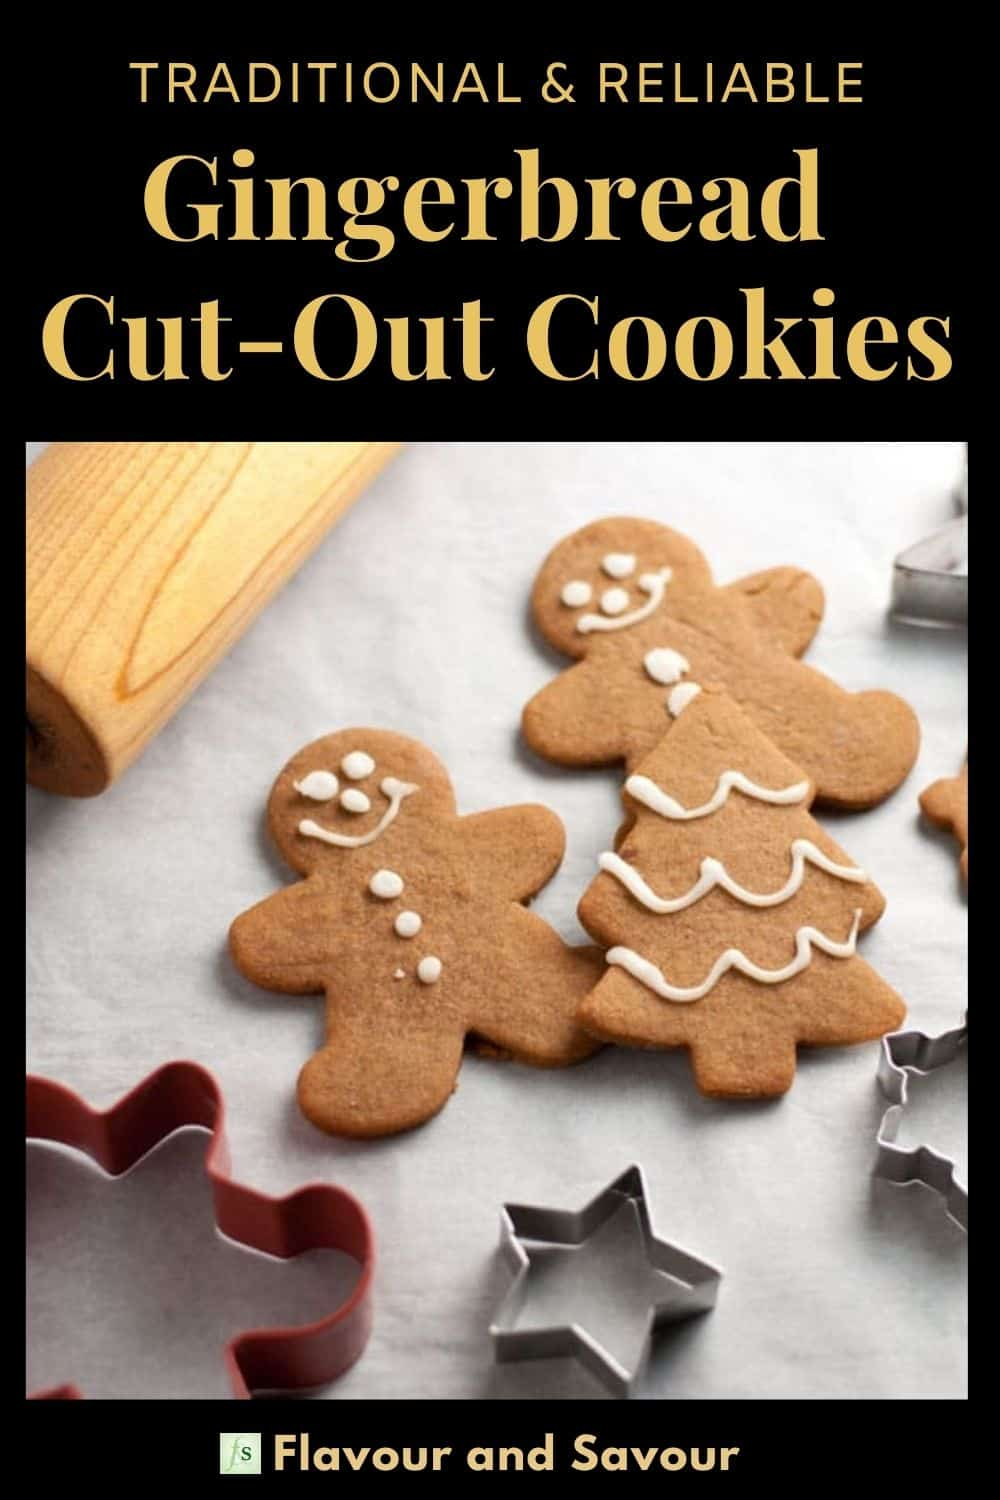 image with text for Gingerbread Cut-Out Cookies